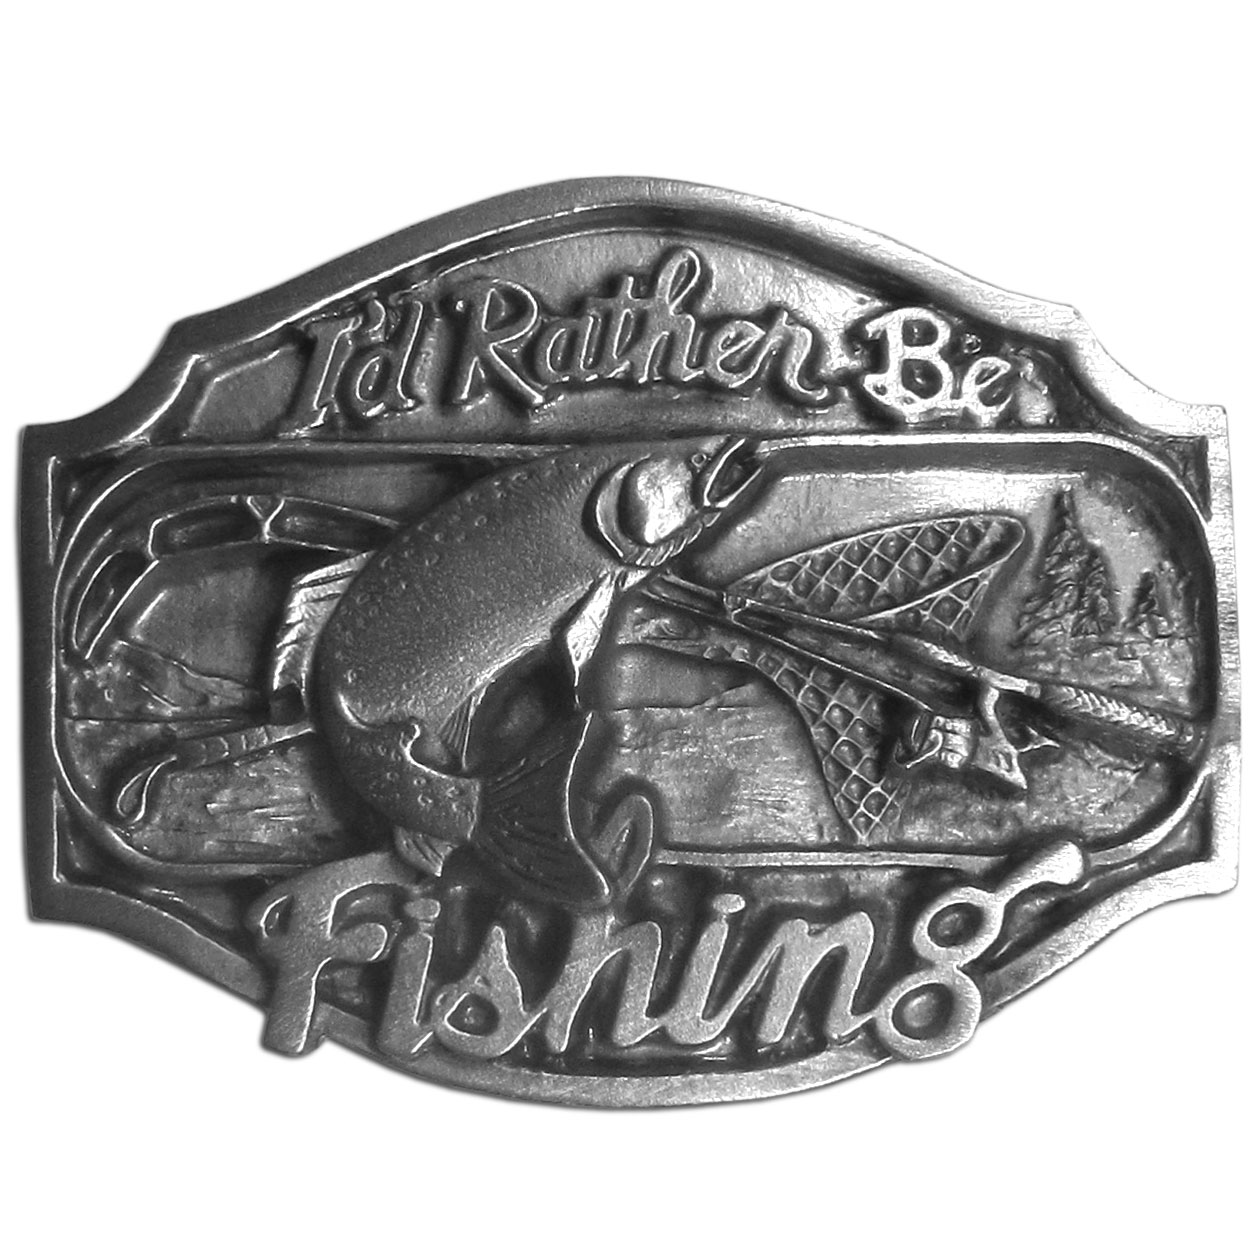 "I'd Rather Be Fishing  Antiqued Belt Buckle - ""I'd rather be fishing"" is written on this belt buckle with a fish jumping from the water, a fishing pole and a net. In the background are a lake and trees. These exquisitely carved buckles are made of fully cast metal, with a standard bale that fits up to 2"""" belts."""